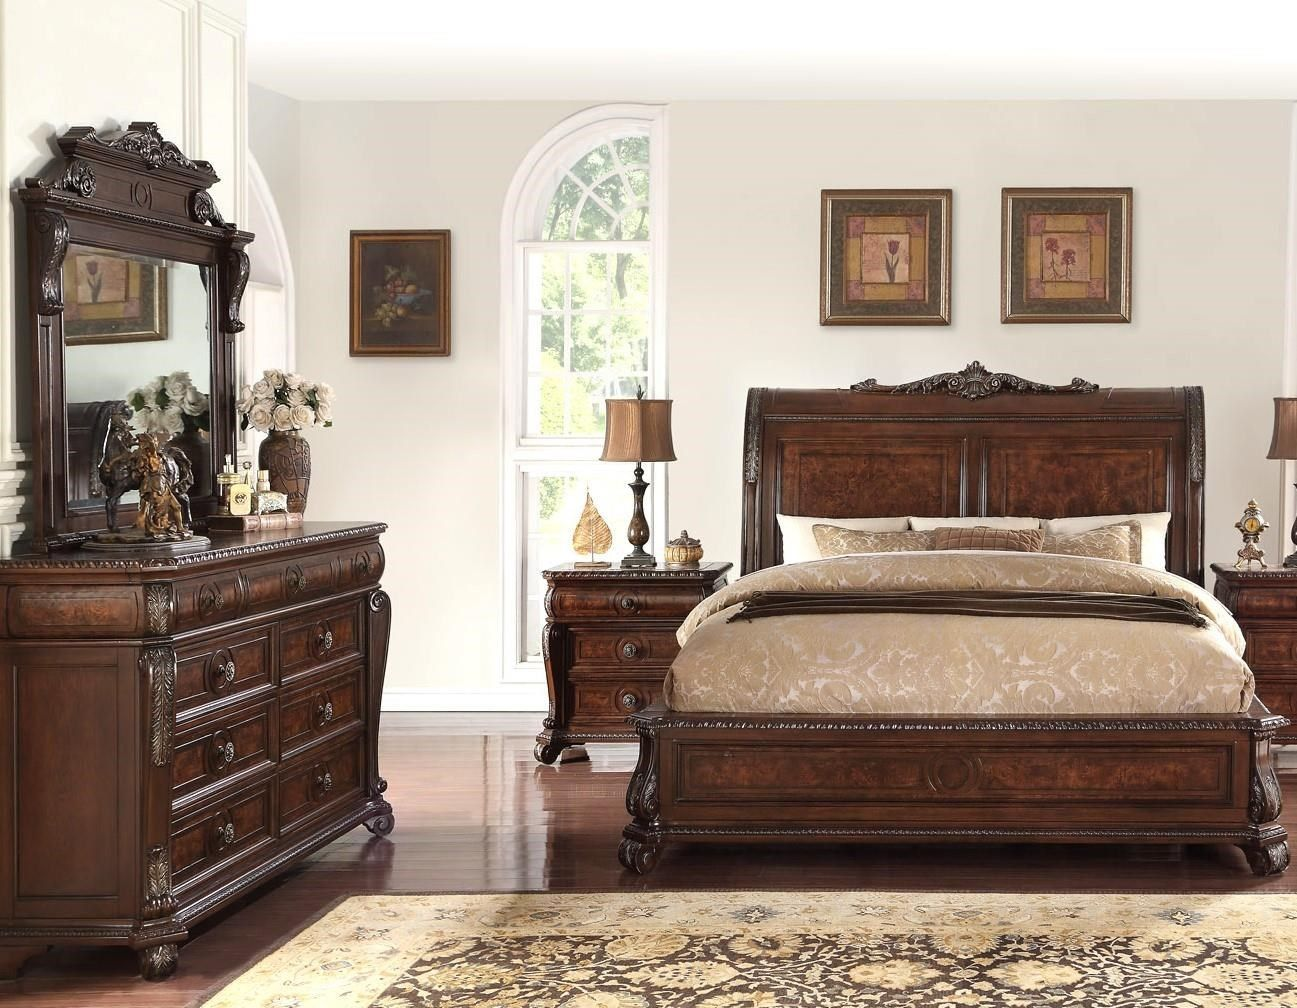 Vintage 5 Piece Elizabeth Sleigh Bed Group by Home